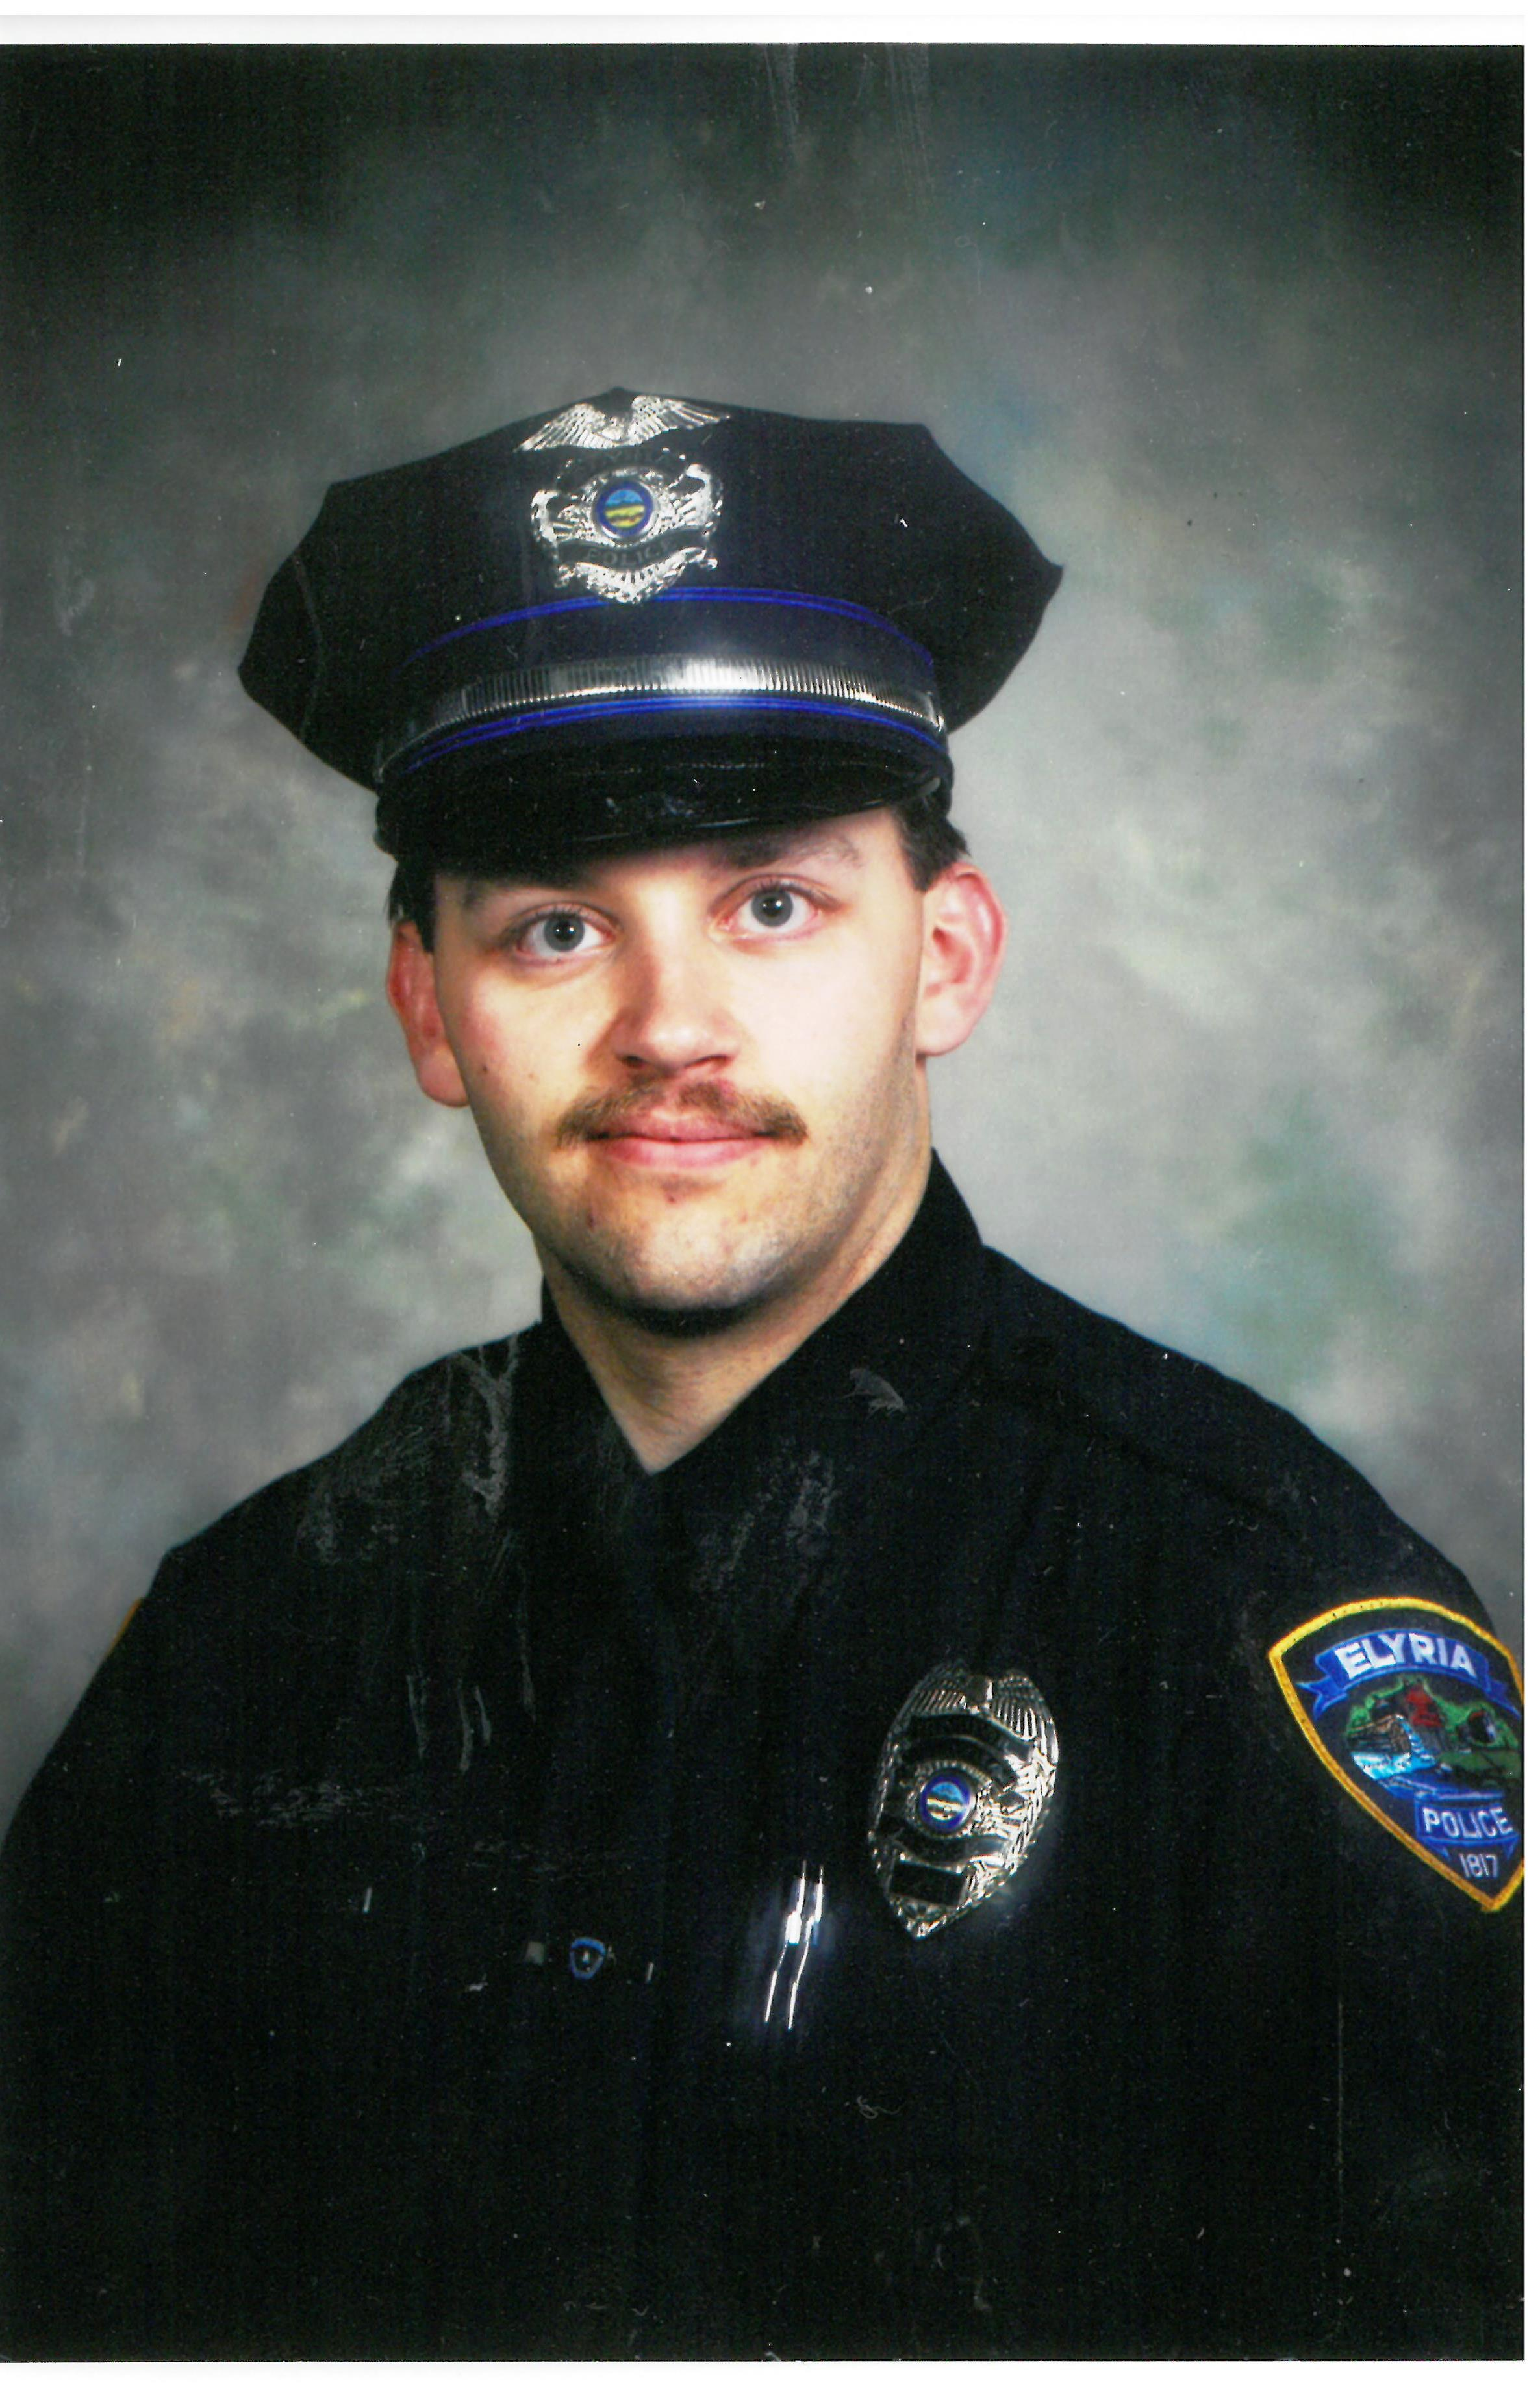 Patrolman Bradley Thomas Scott | Elyria Police Department, Ohio